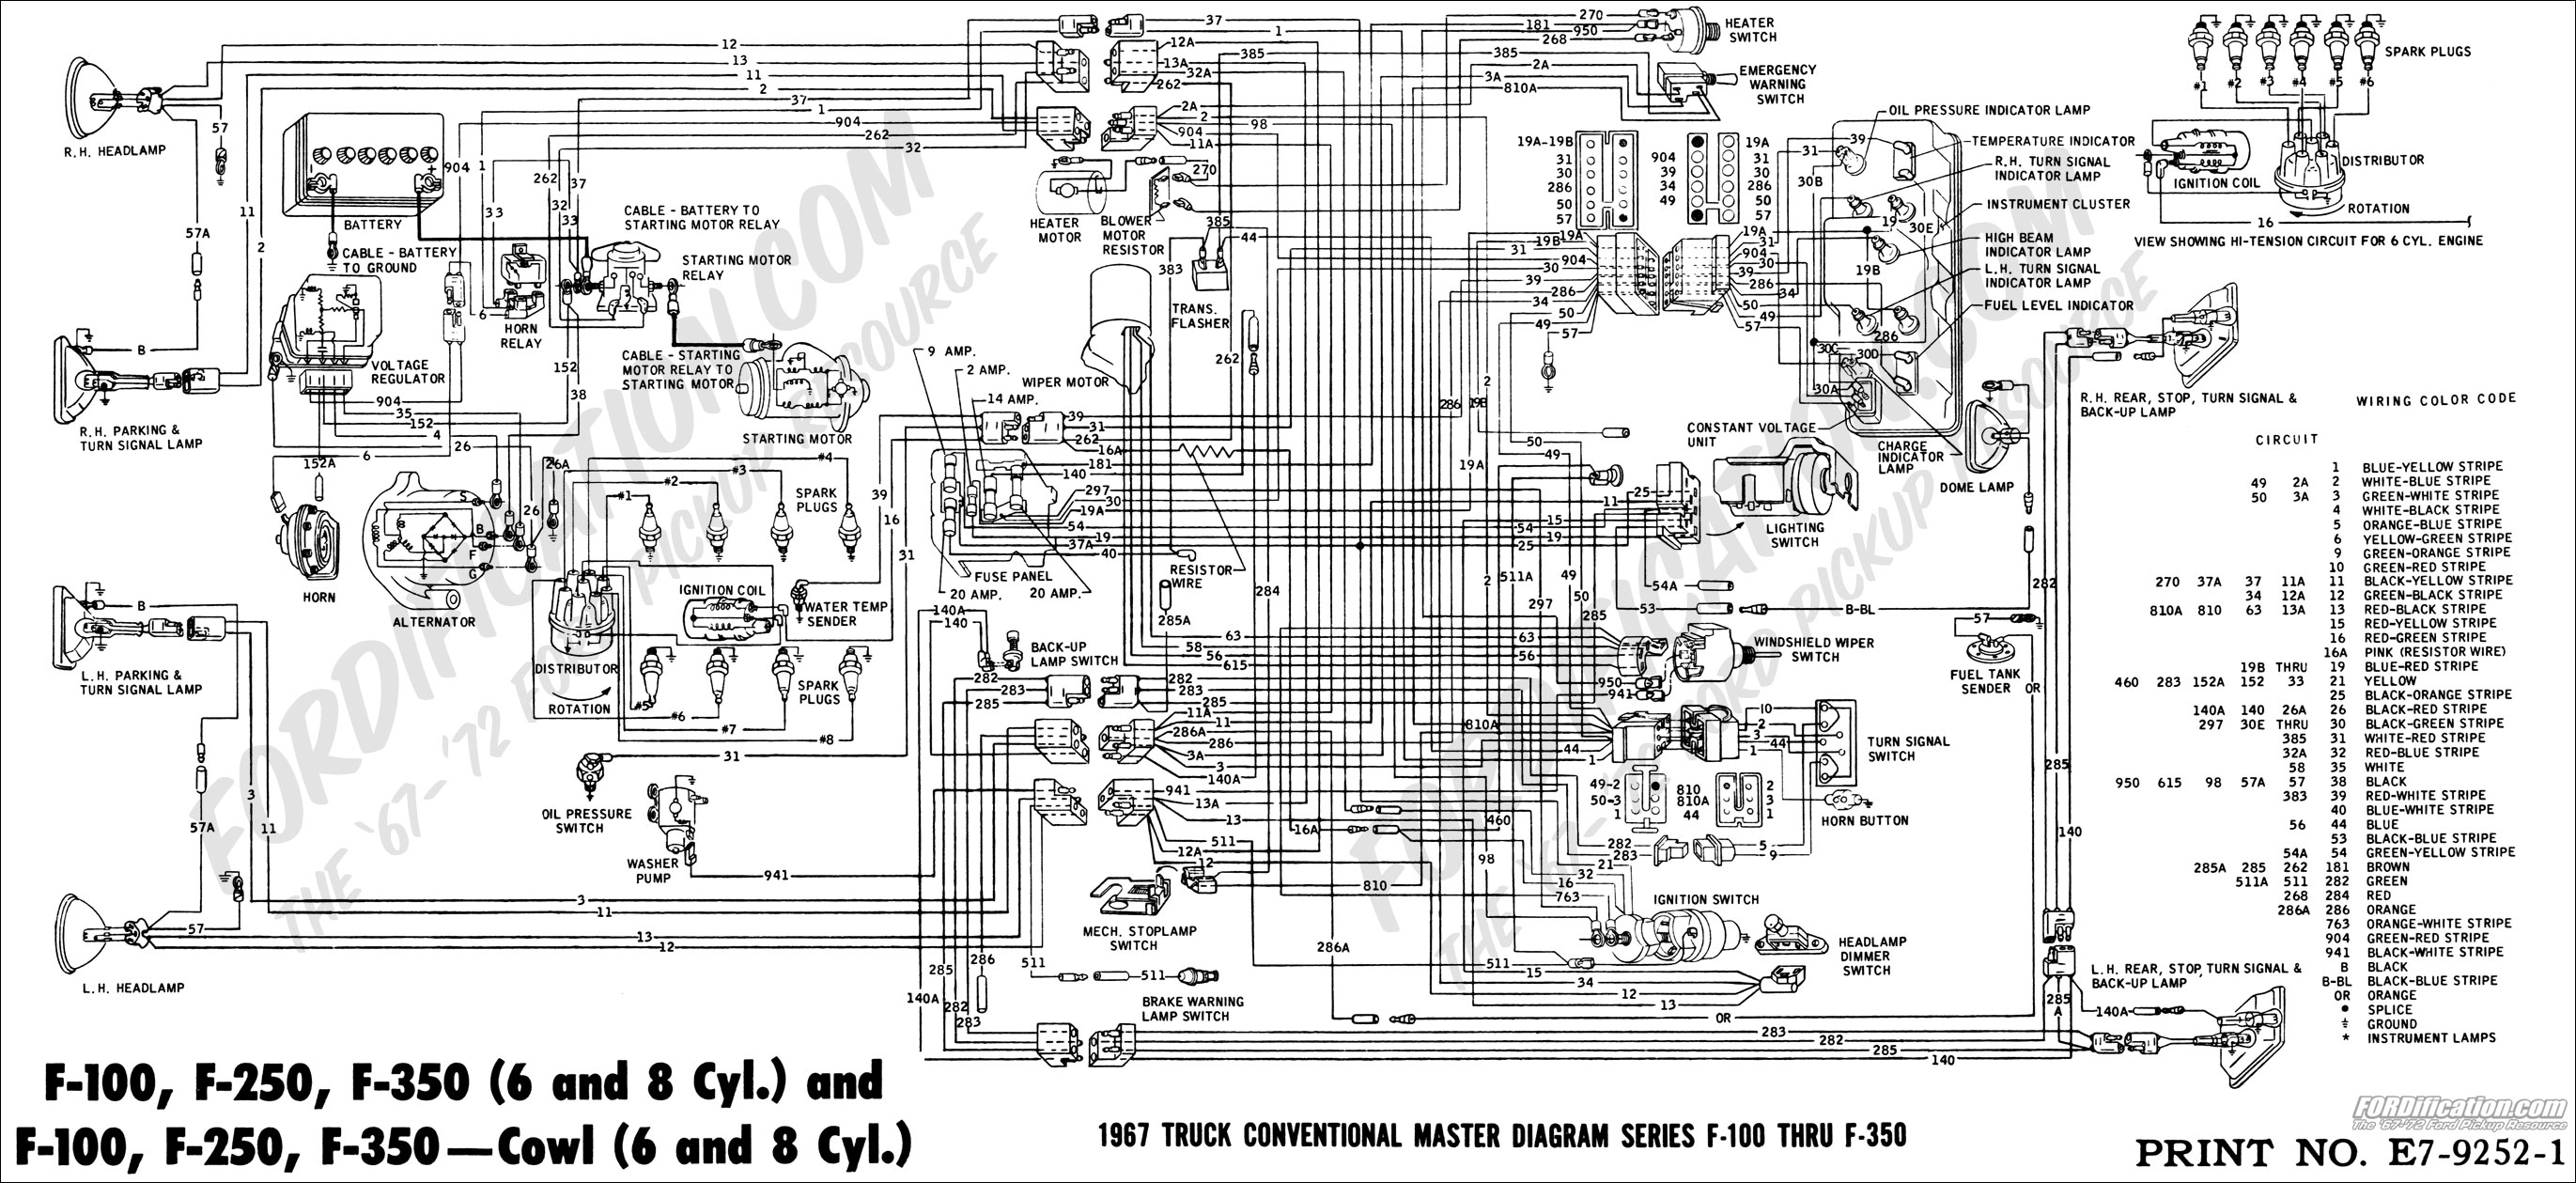 ford focus door parts diagram 1997 f250 truck technical drawings and schematics - section h wiring diagrams